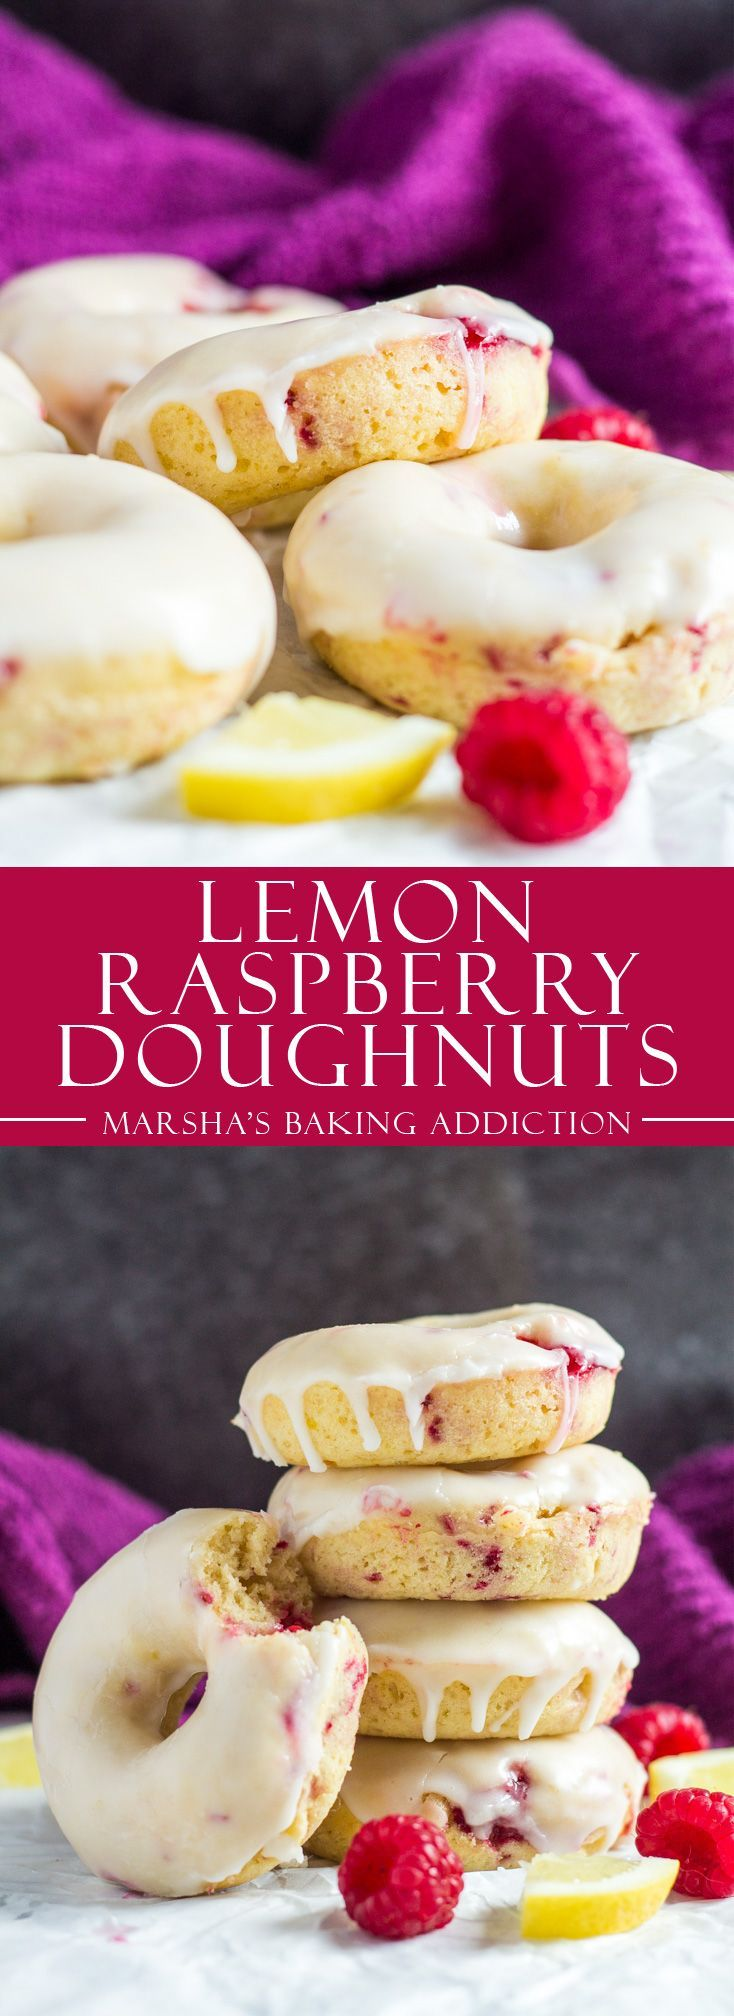 Baked Lemon Raspberry Doughnuts | marshasbakingaddiction.com @marshasbakeblog